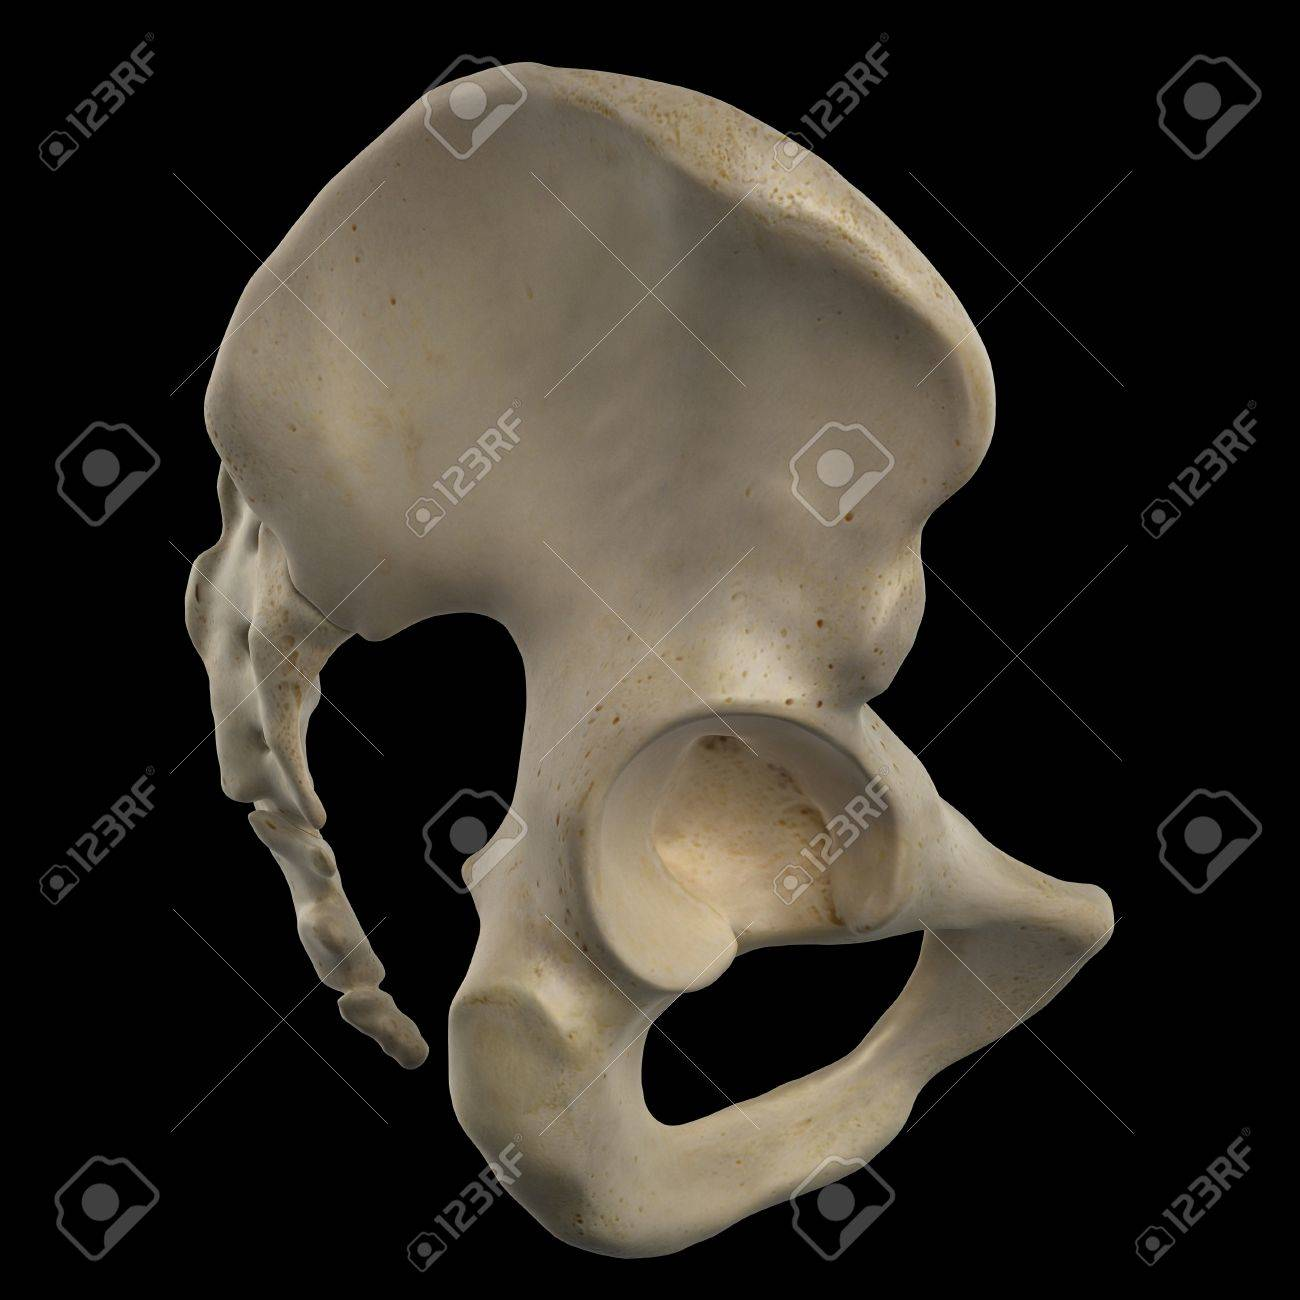 Human Hip Bone Artwork Stock Photo Picture And Royalty Free Image